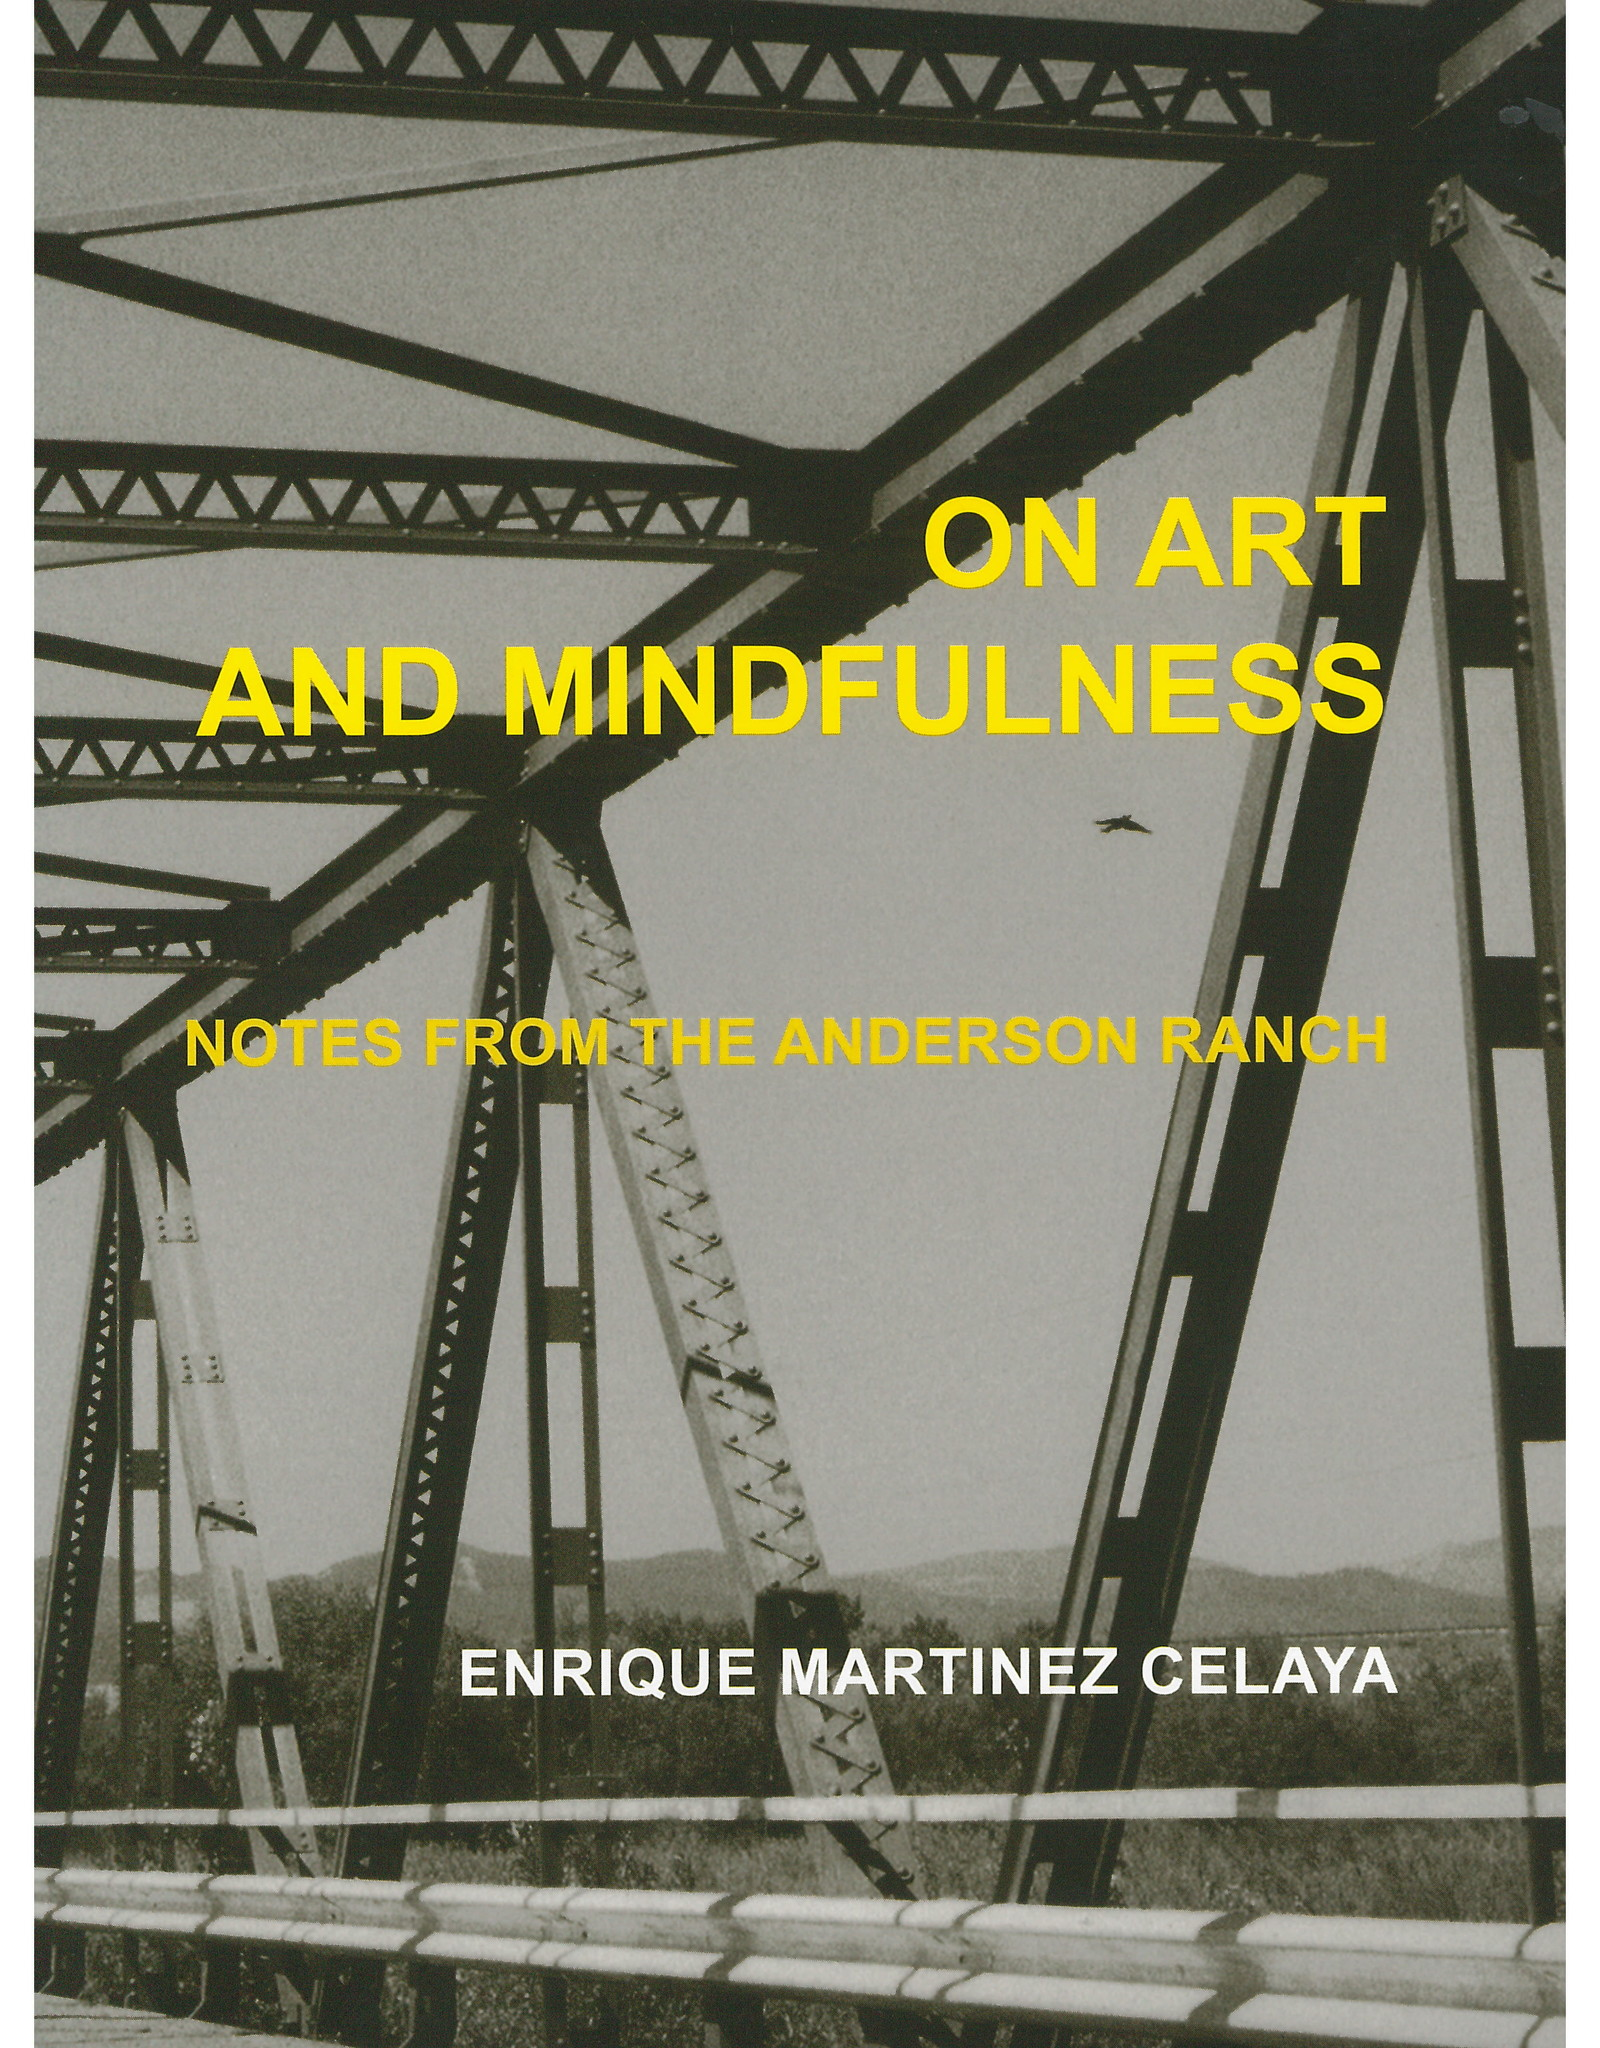 On Art and Mindfulness Notes from the Anderson Ranch / Enrique Martinez Celaya